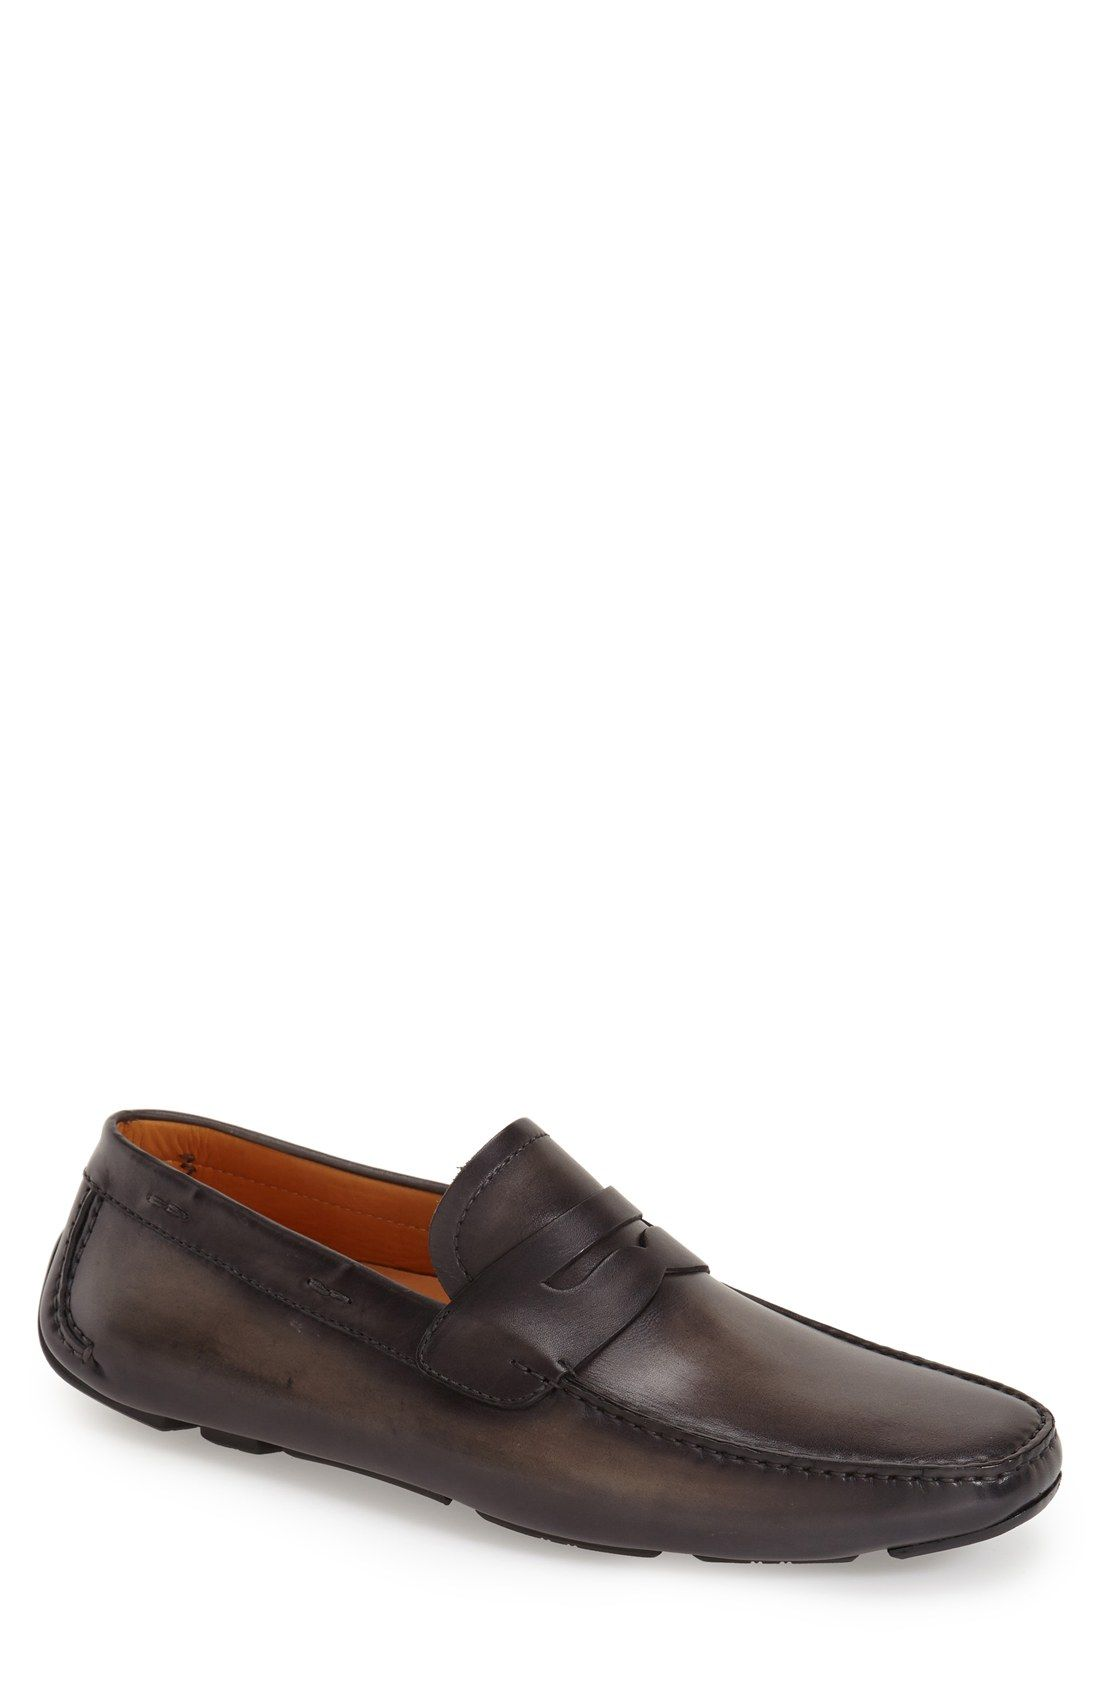 Men Casual Slip On Loafer Shoes Travel Footwear